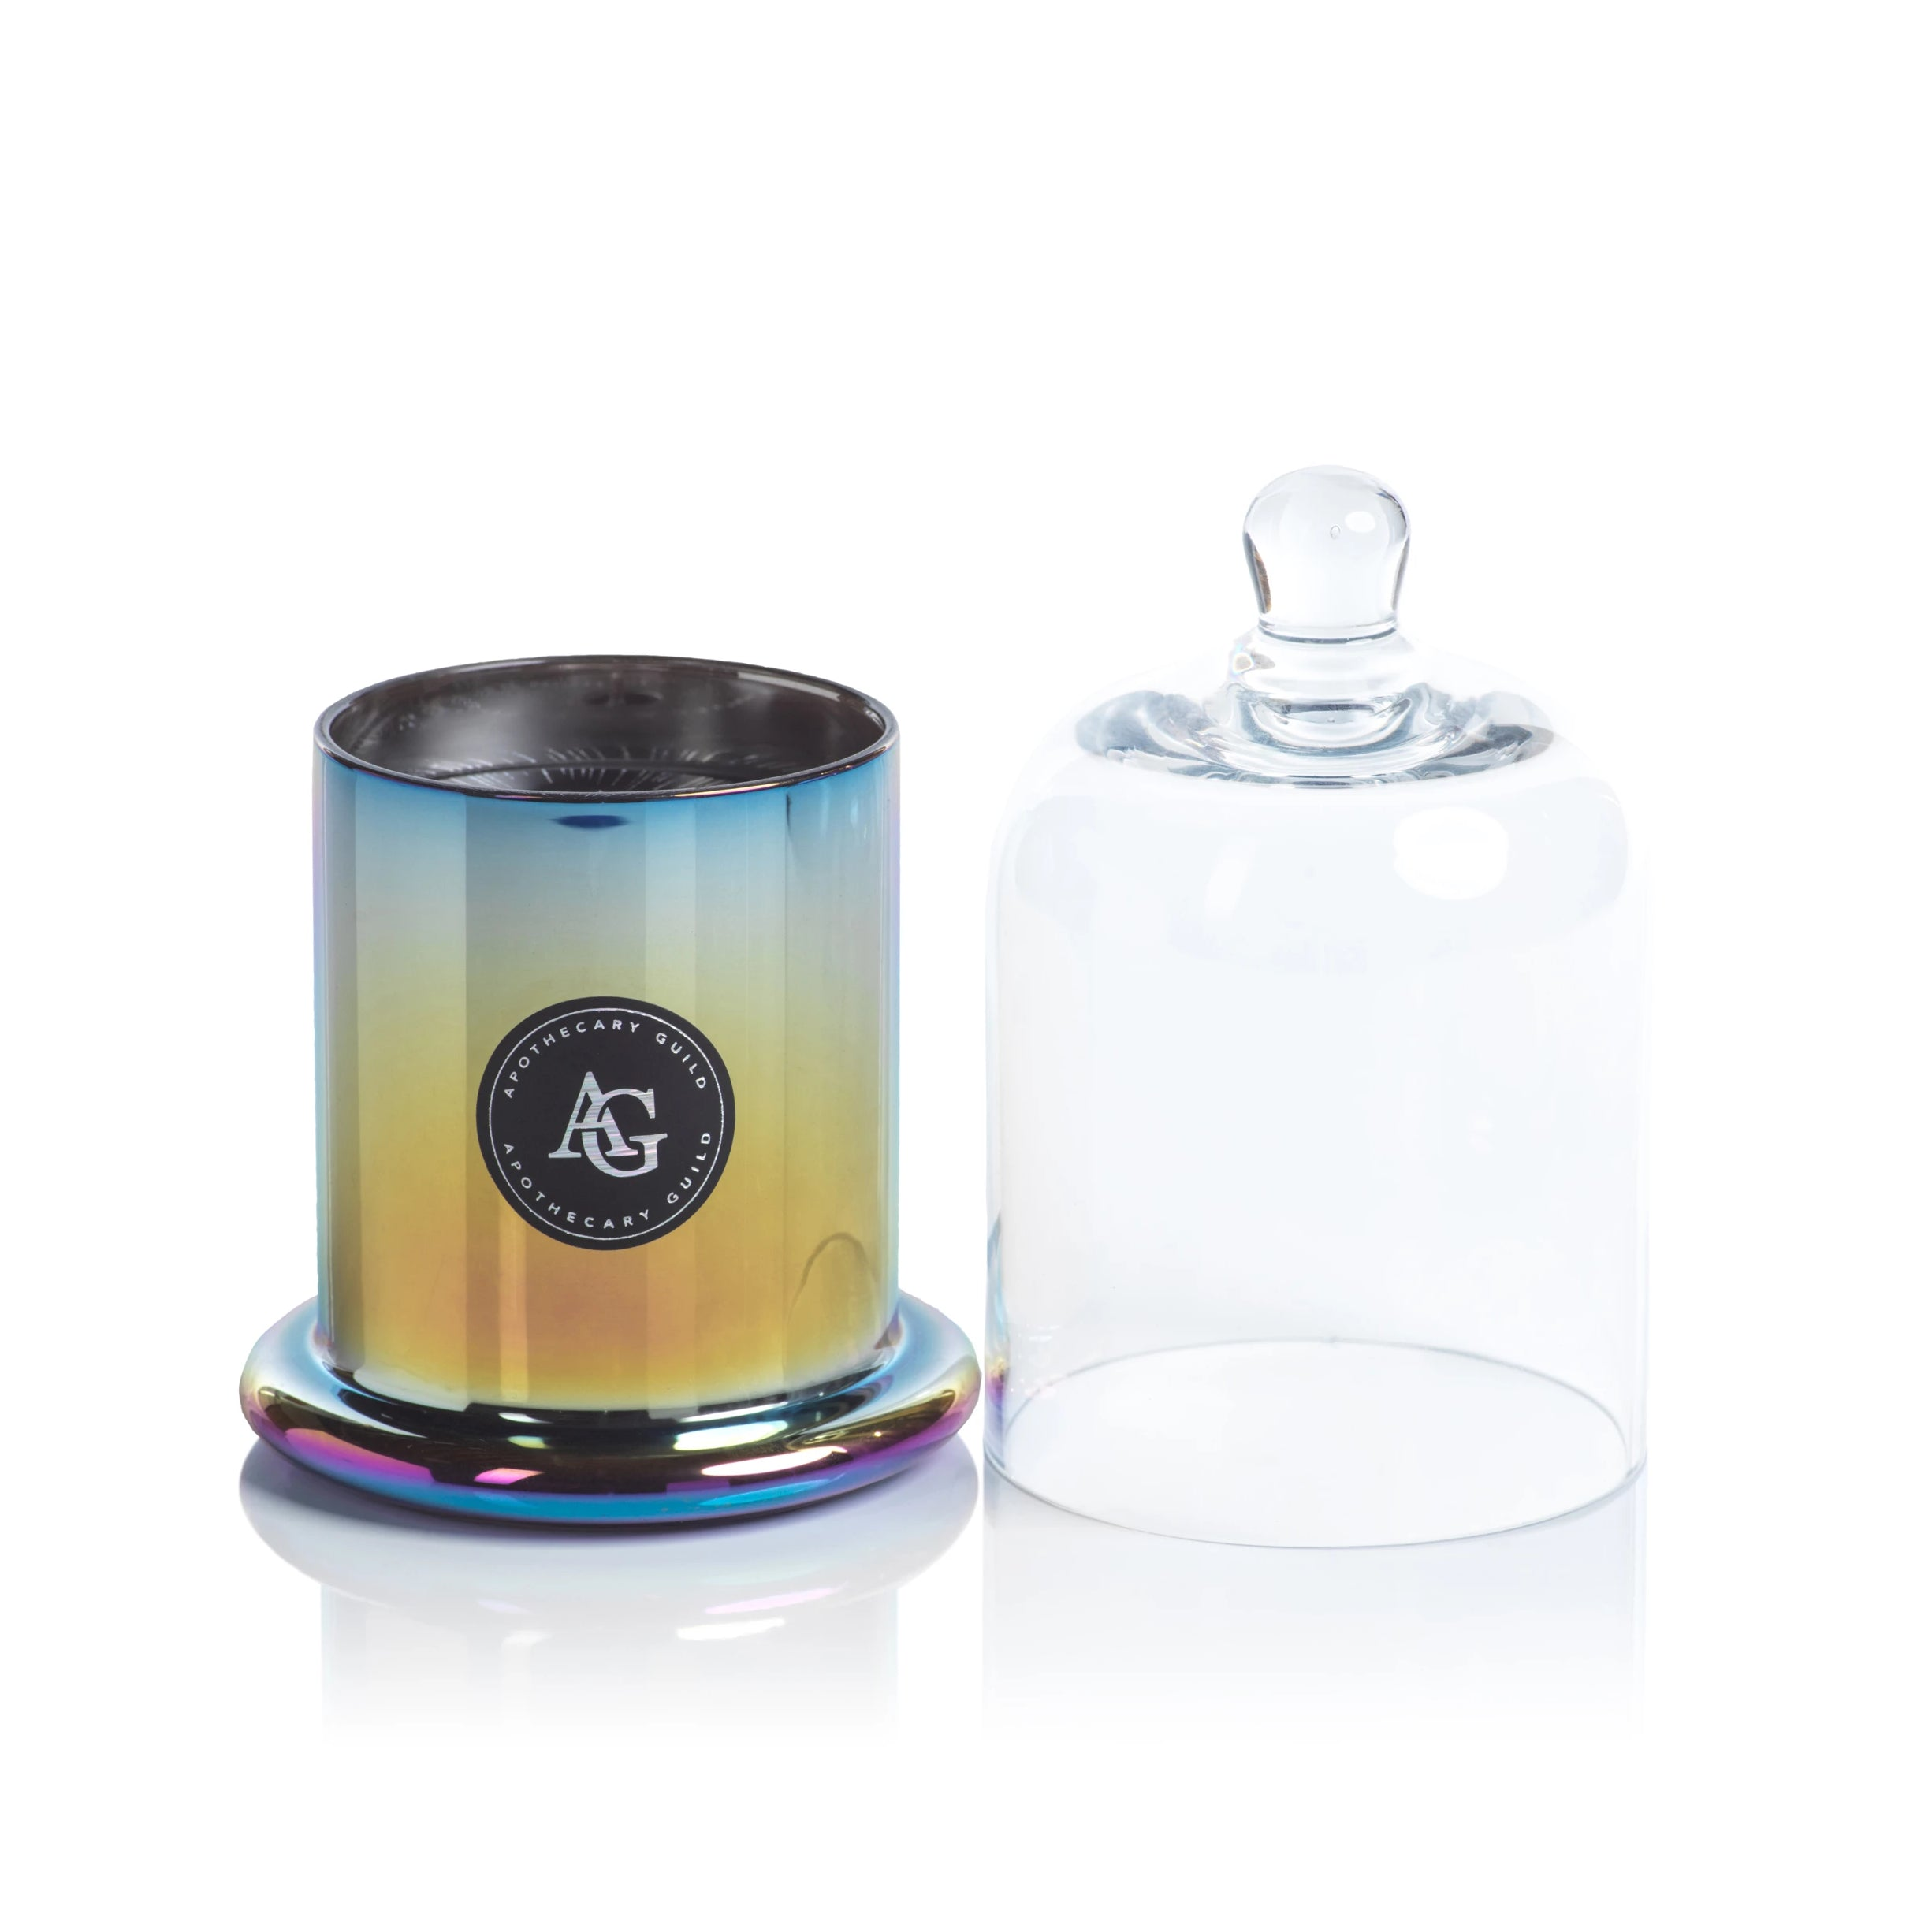 Apothecary Guild Dome Candle - Rainbow - CARLYLE AVENUE